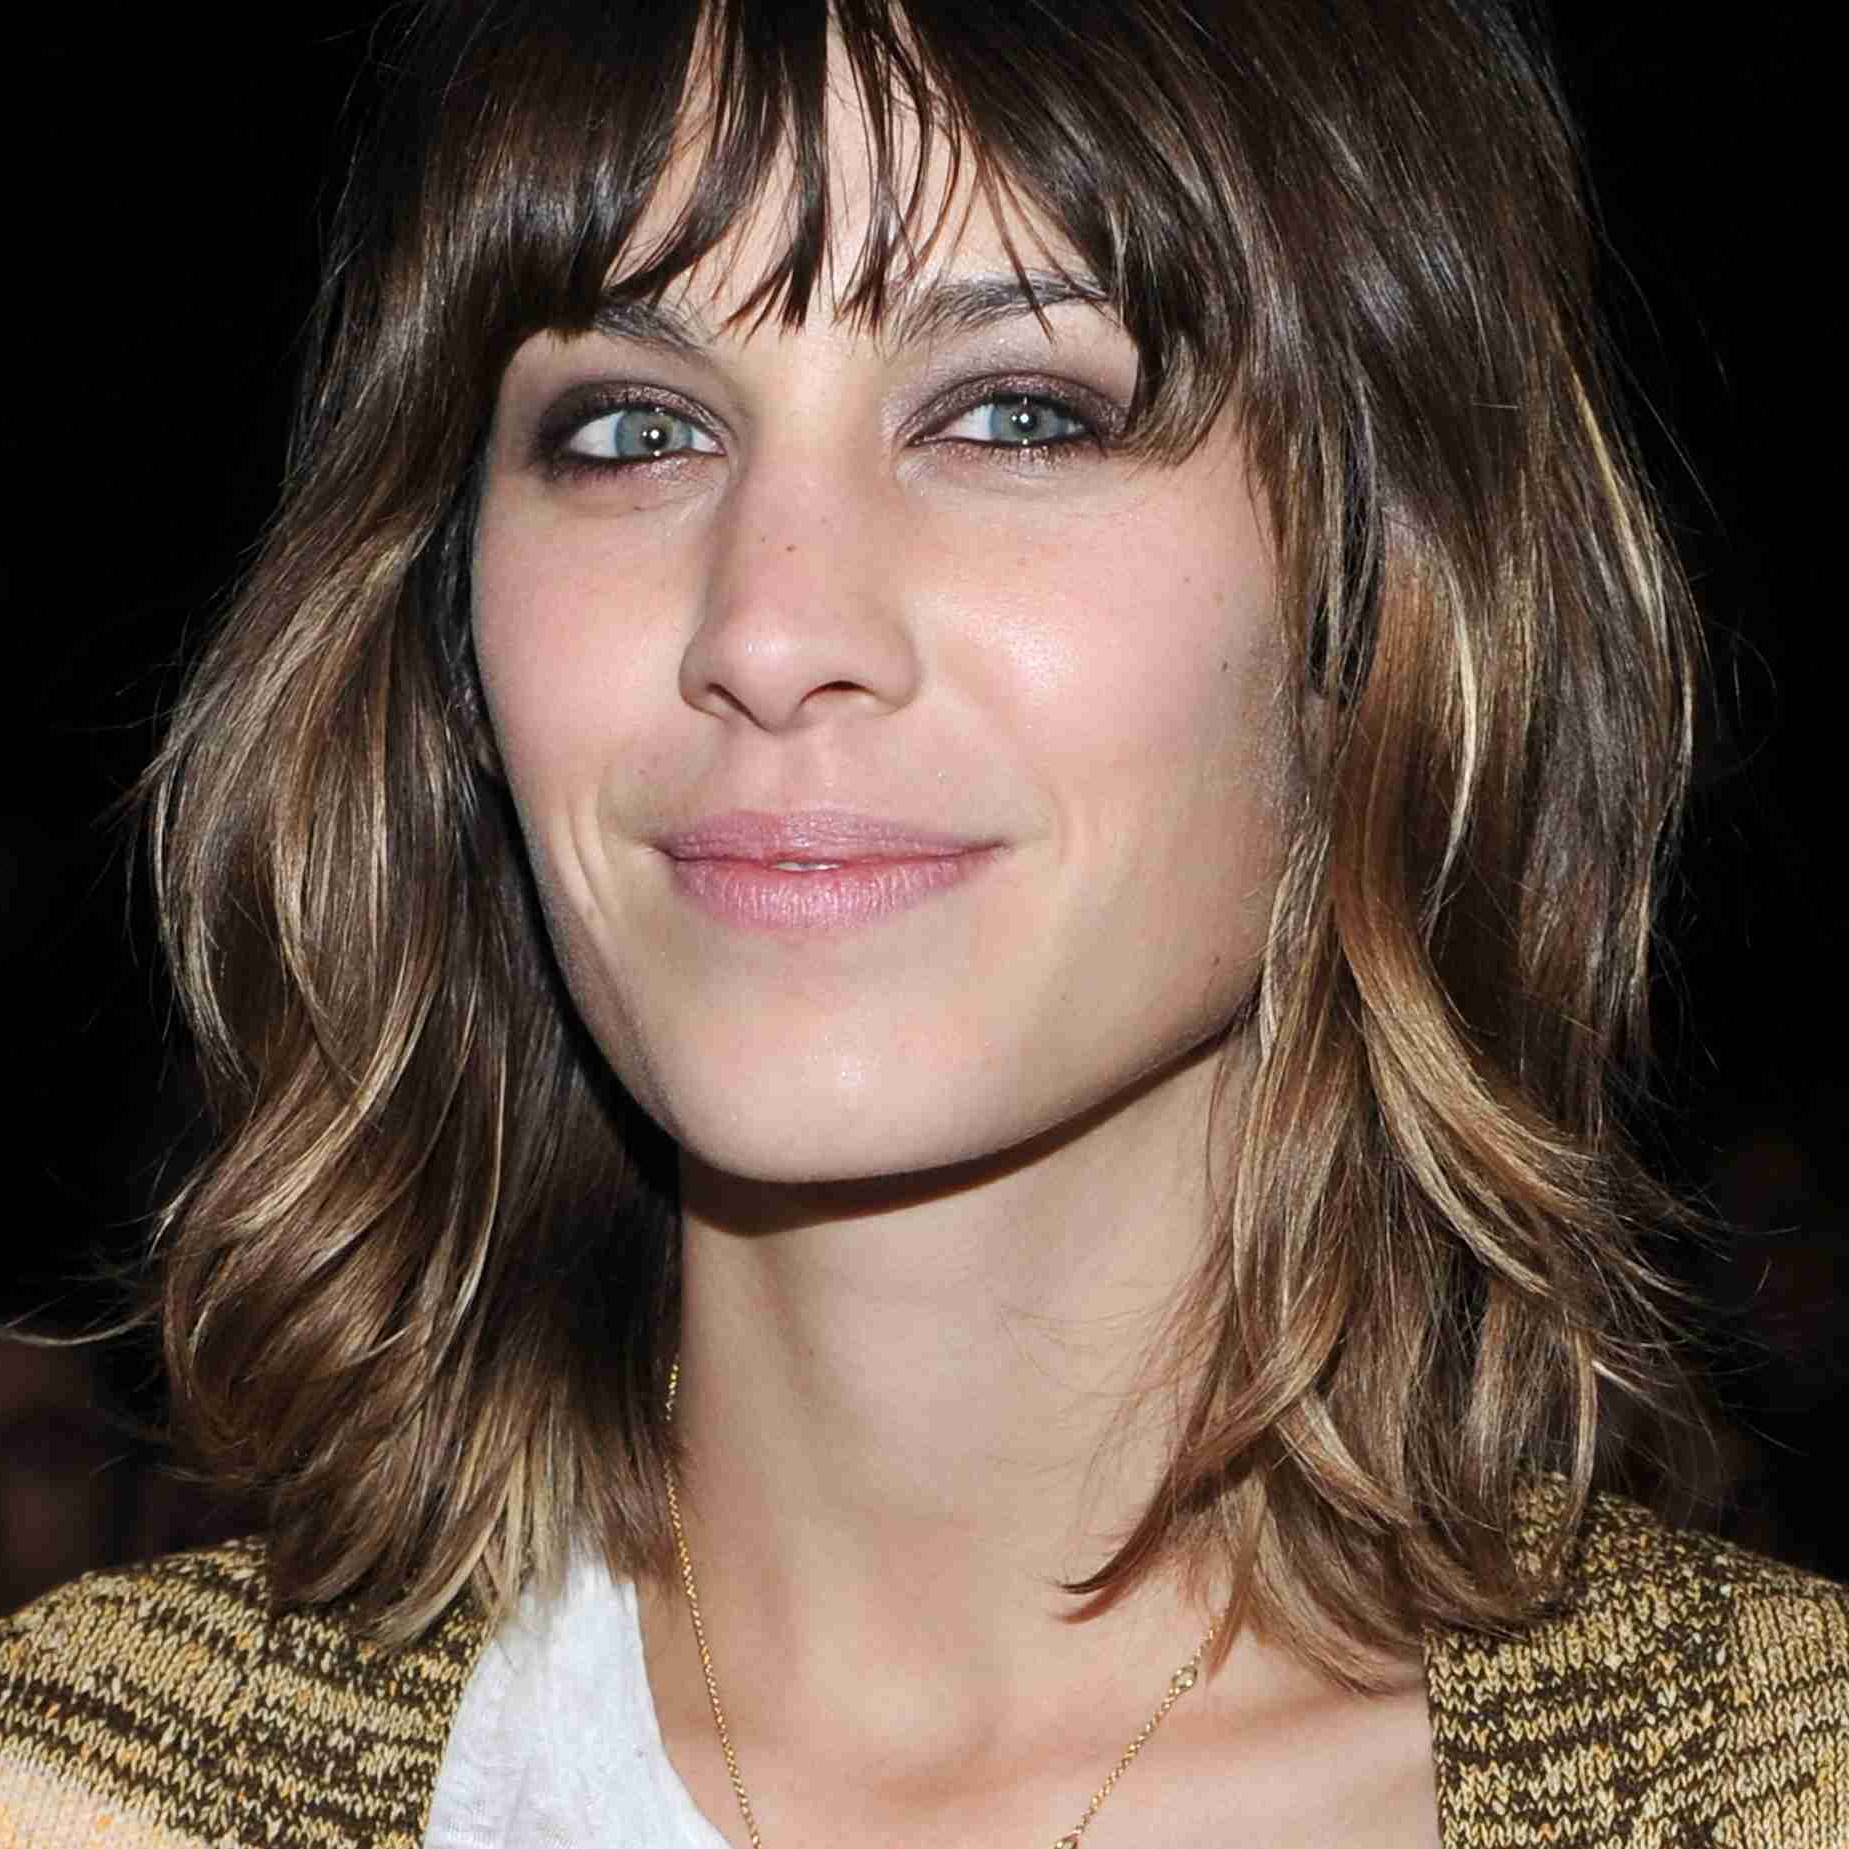 Can't Miss Shag Haircuts, From Short To Long Regarding Recent Long Curly Shag Hairstyles With Bangs (View 14 of 20)